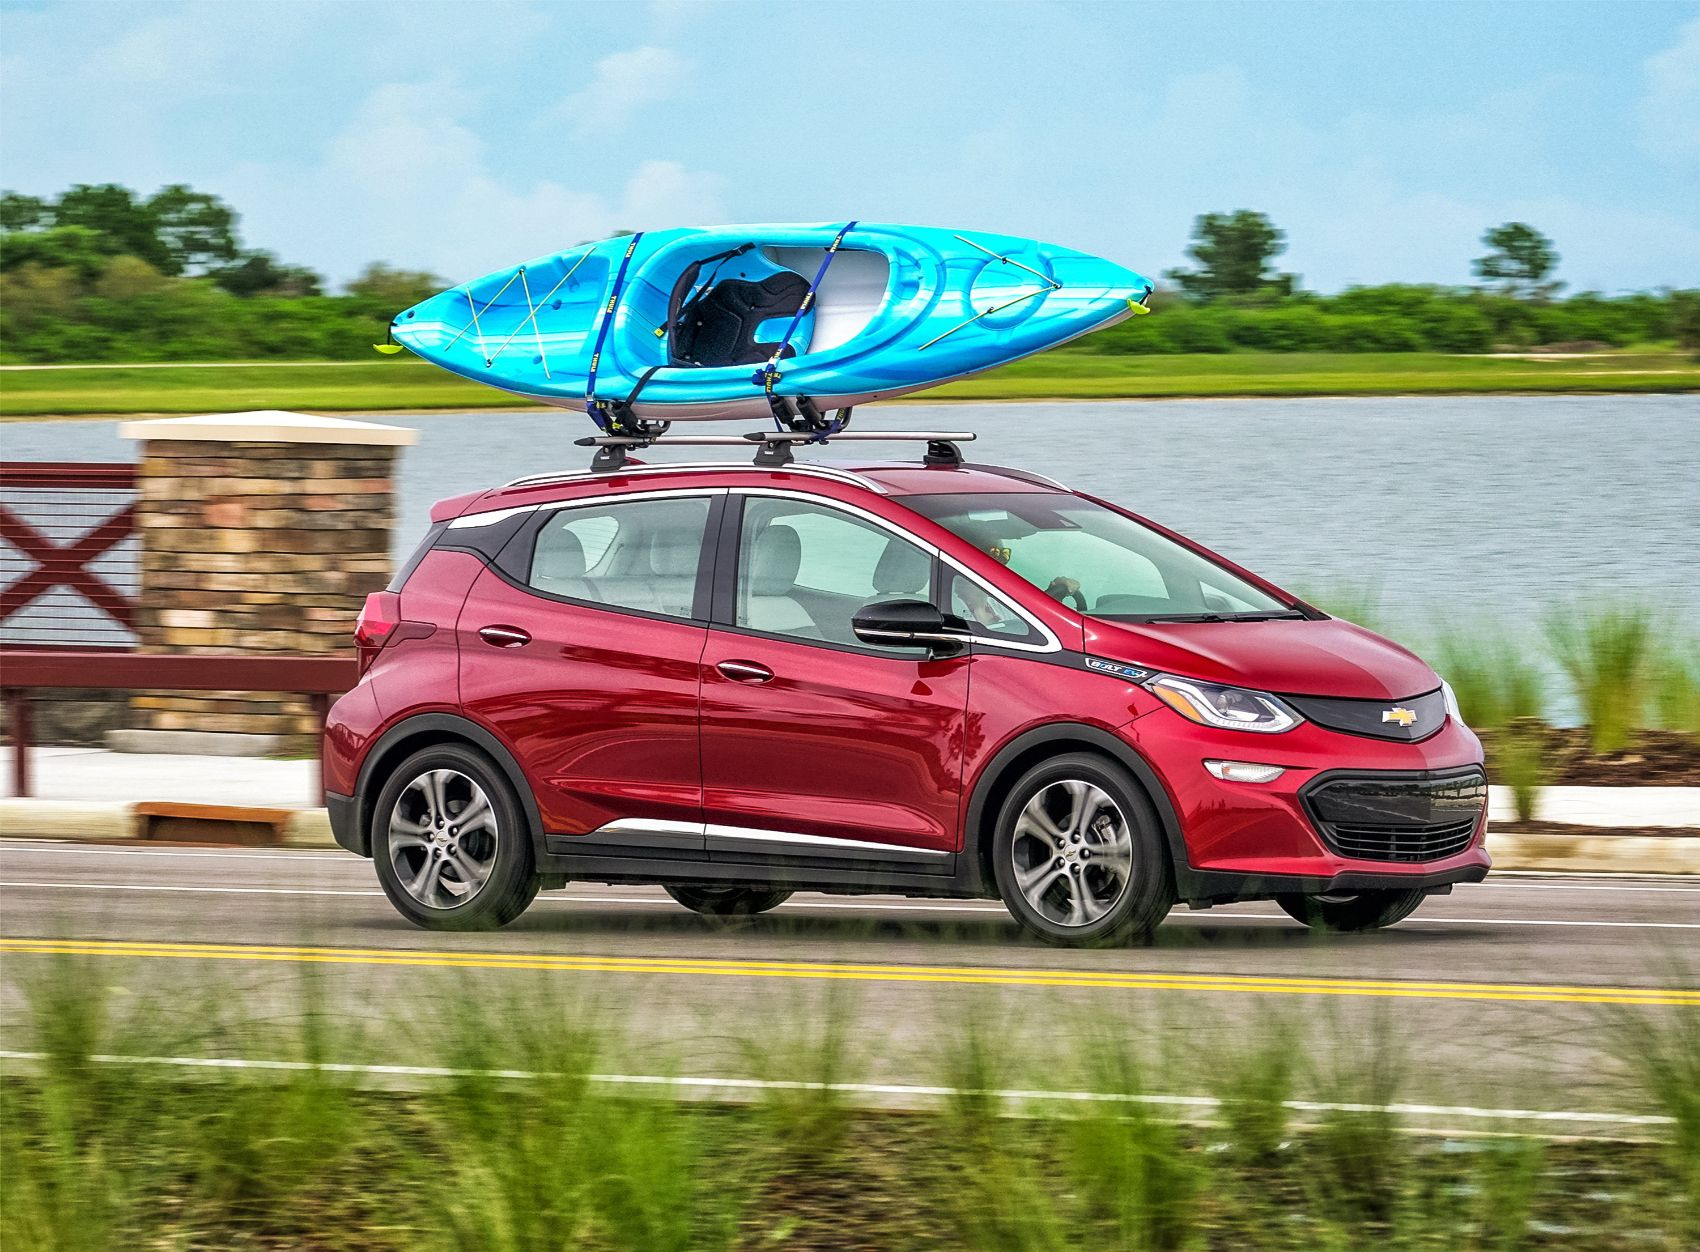 2020 Chevy Bolt: Change In The Interest of Range 15